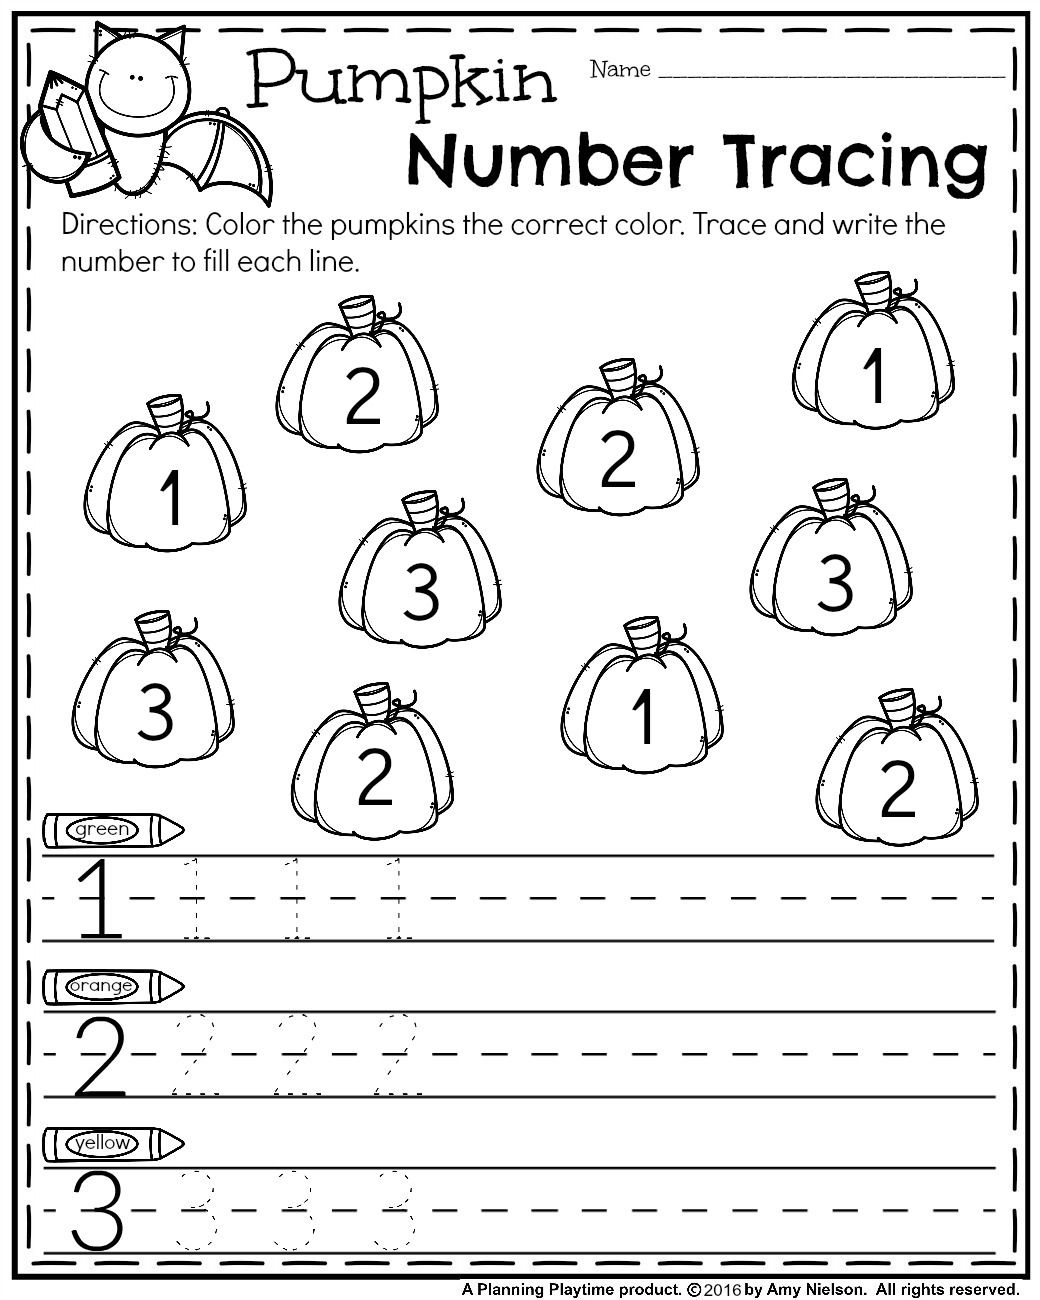 October Preschool Worksheets Teachers Pay Teachers